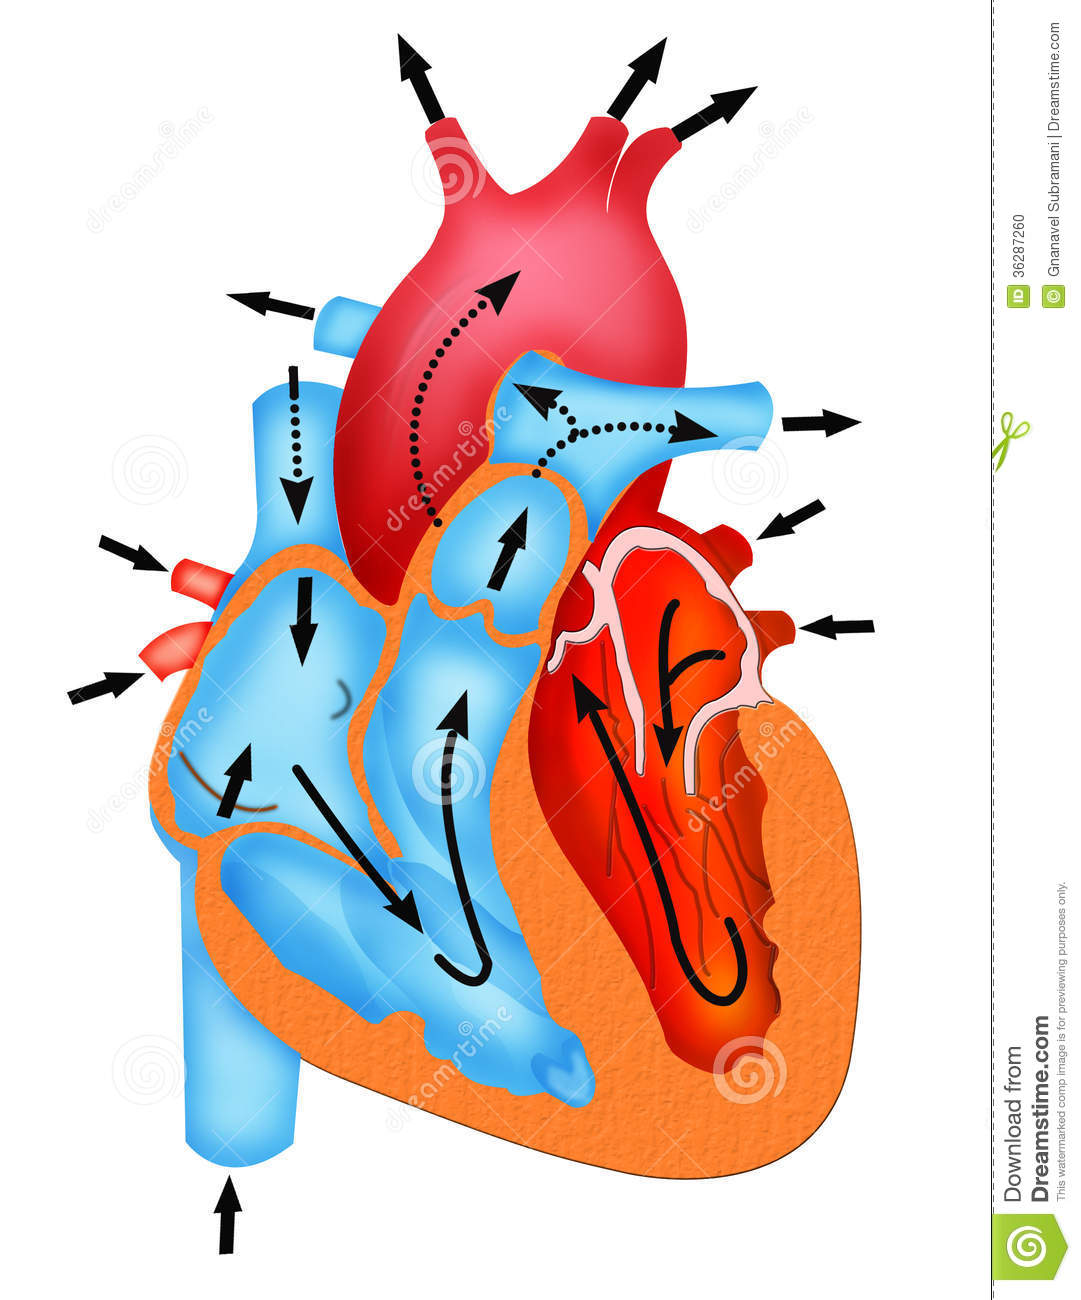 Pathway of blood flow through the heart stock illustration download comp ccuart